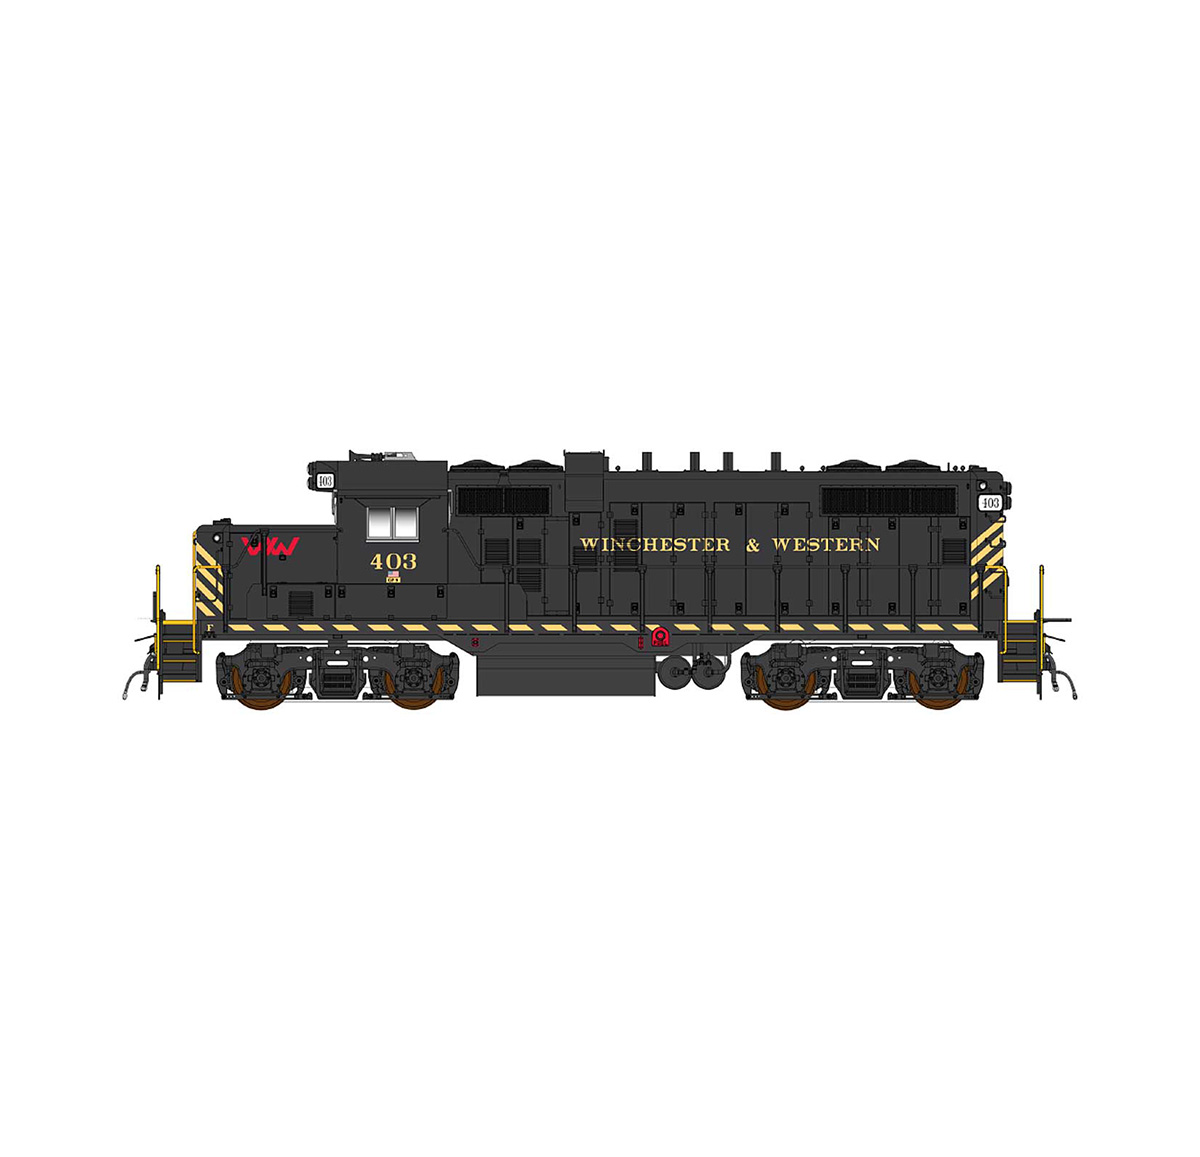 InterMountain 49870S-02 HO EMD GP10 Paducah, ESU LokSound & DCC, W&W (w/DL) #403